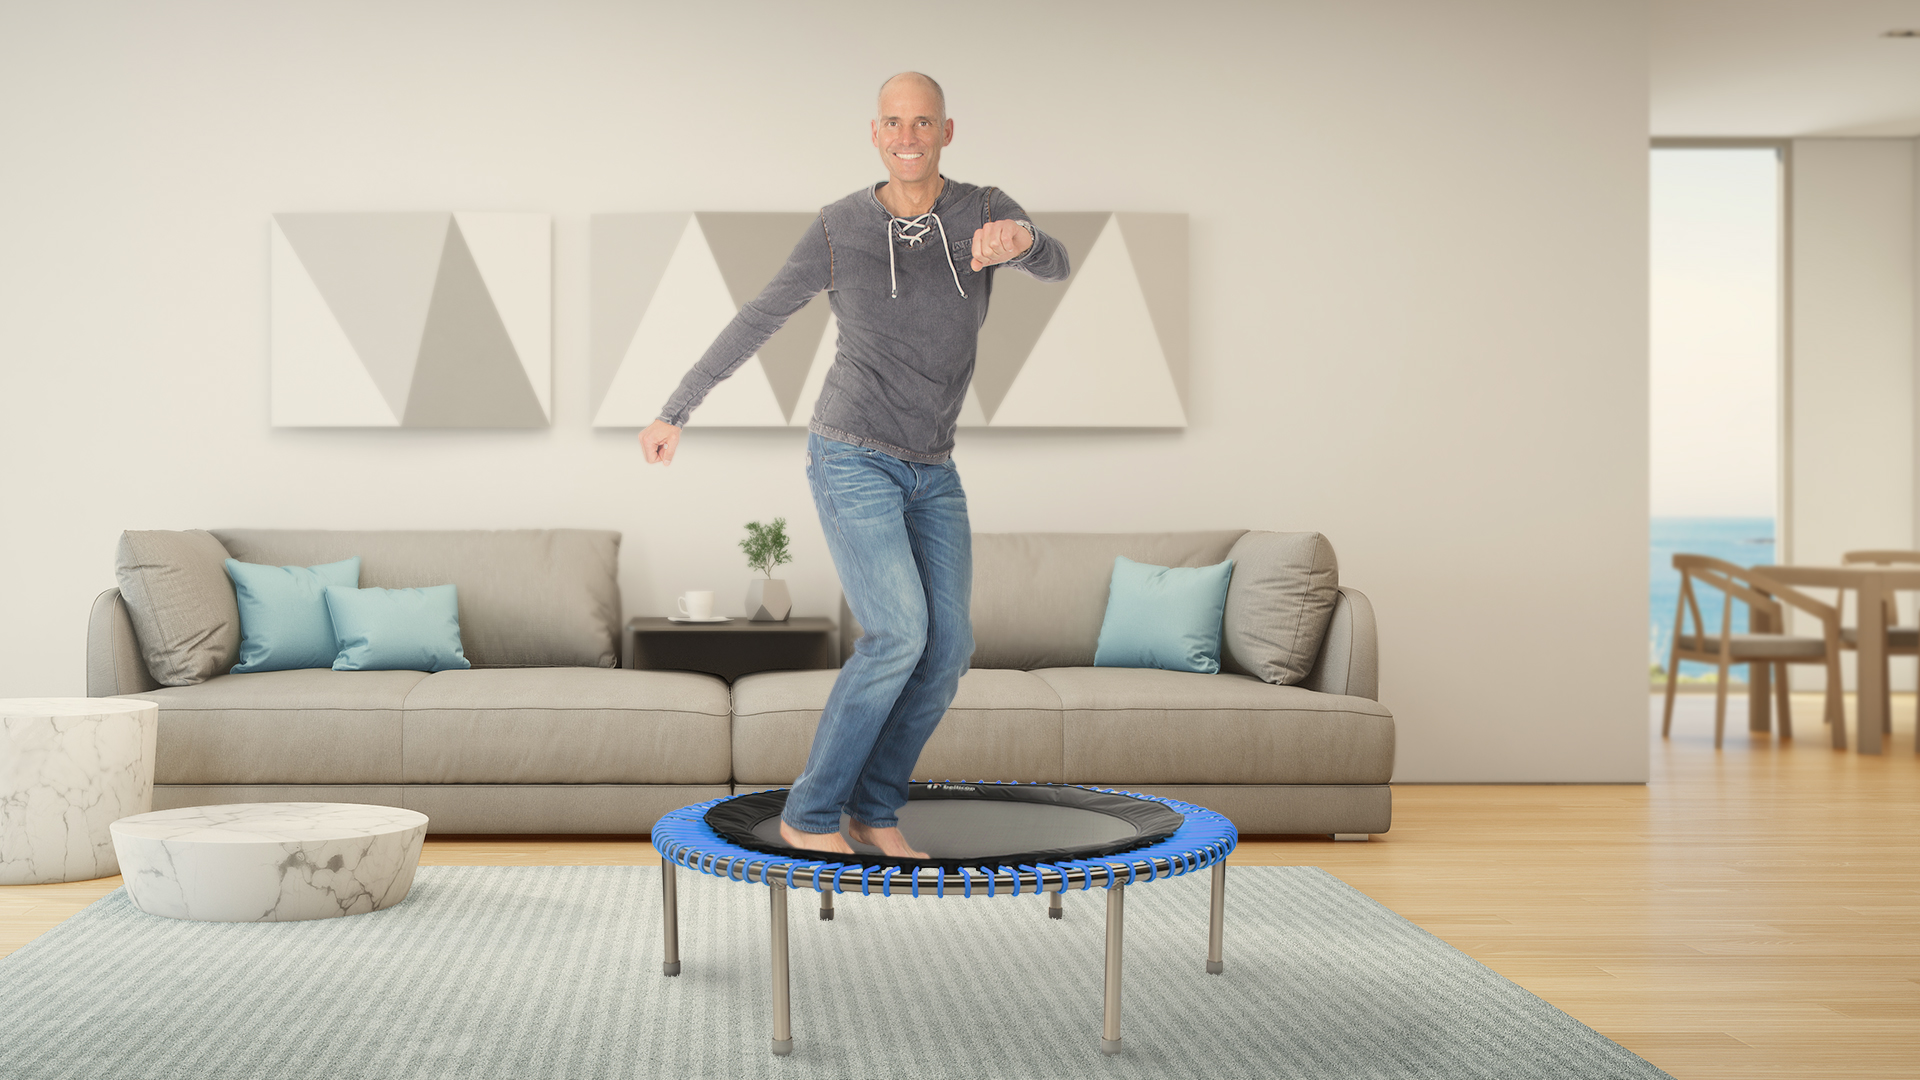 Man keeping fit on a bellicon indoor trampoline